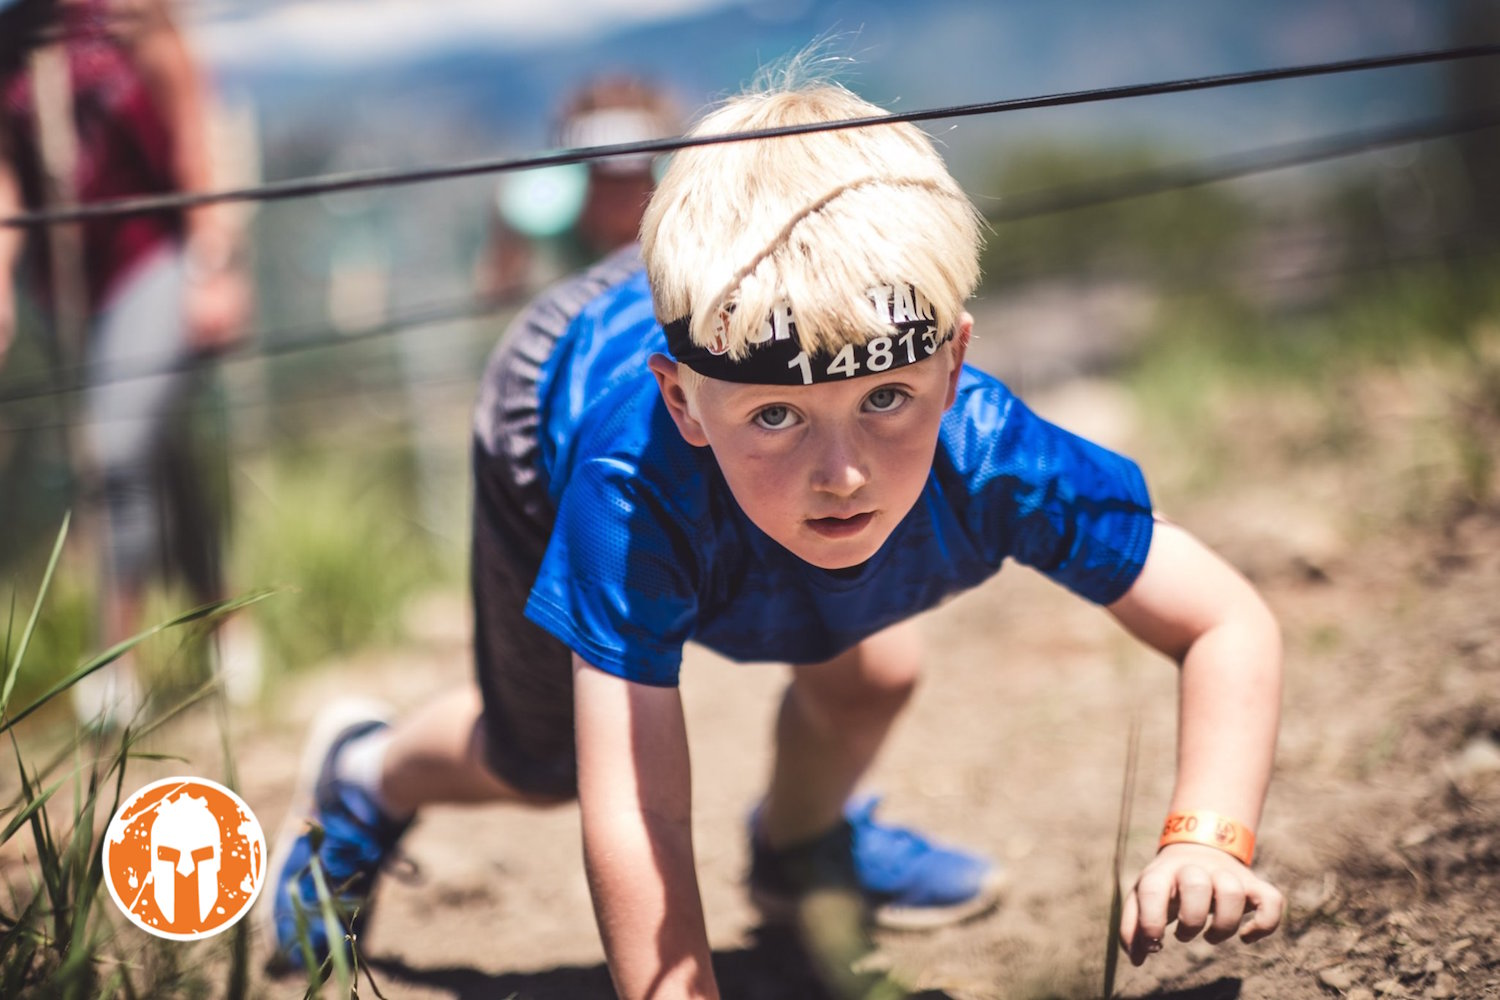 Scotland Spartan Kids Race - 25th & 26th September 2021